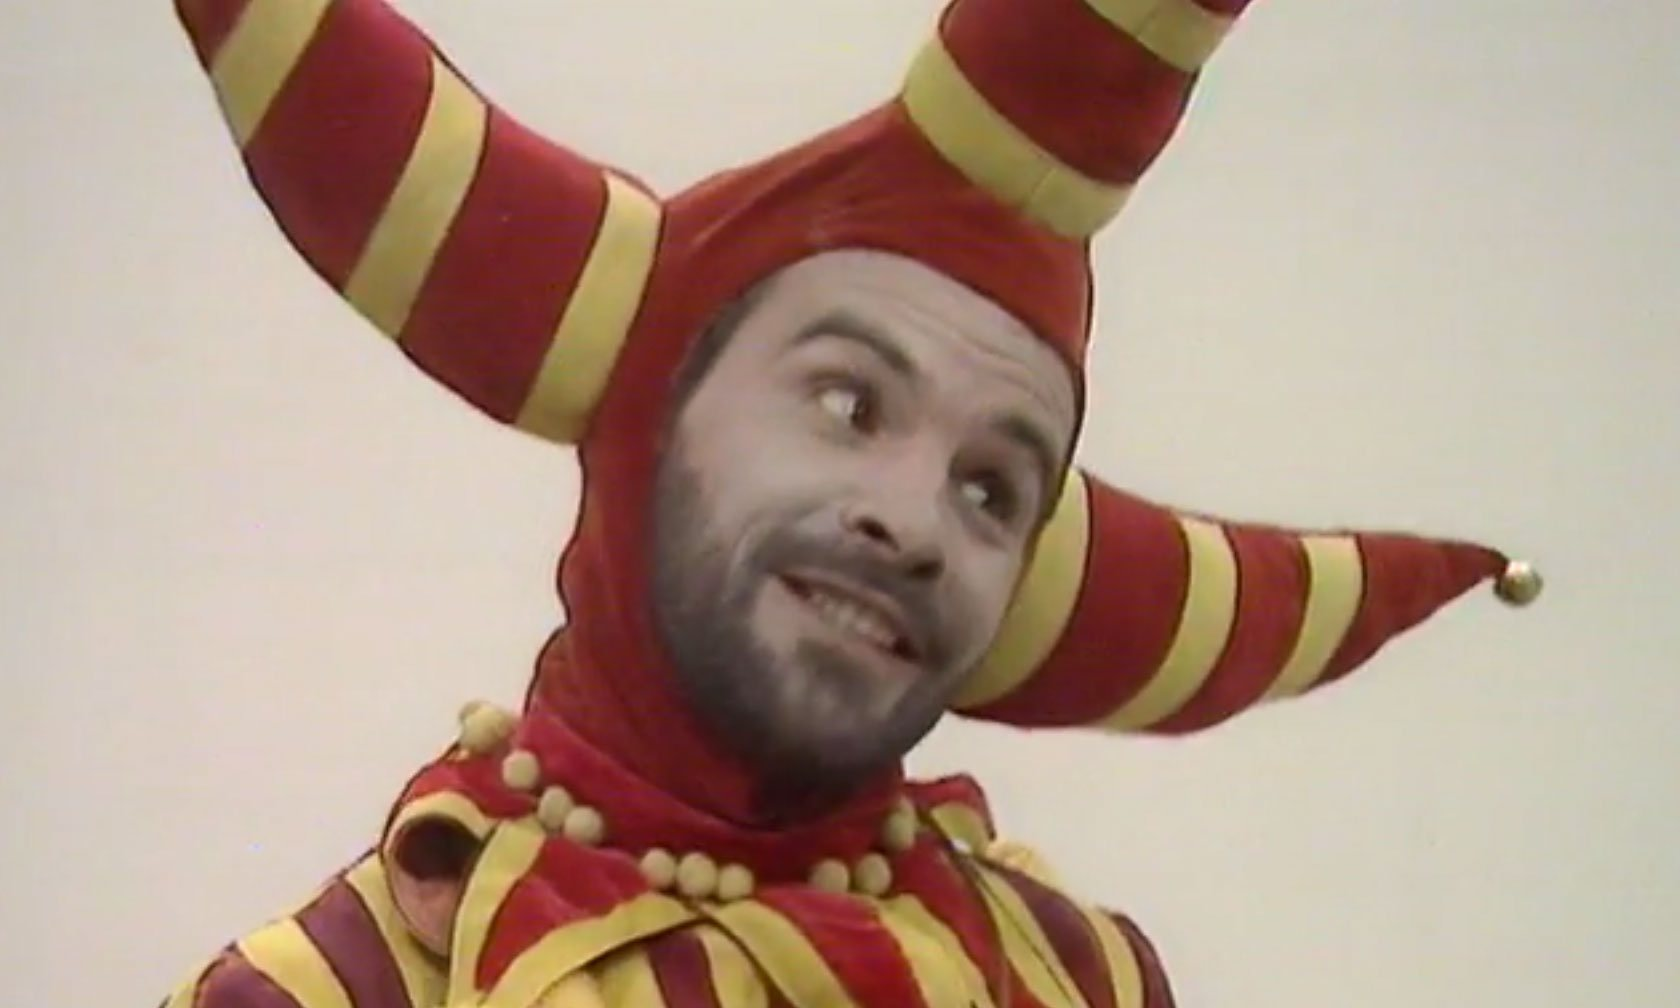 Timothy Claypole from Rentaghost